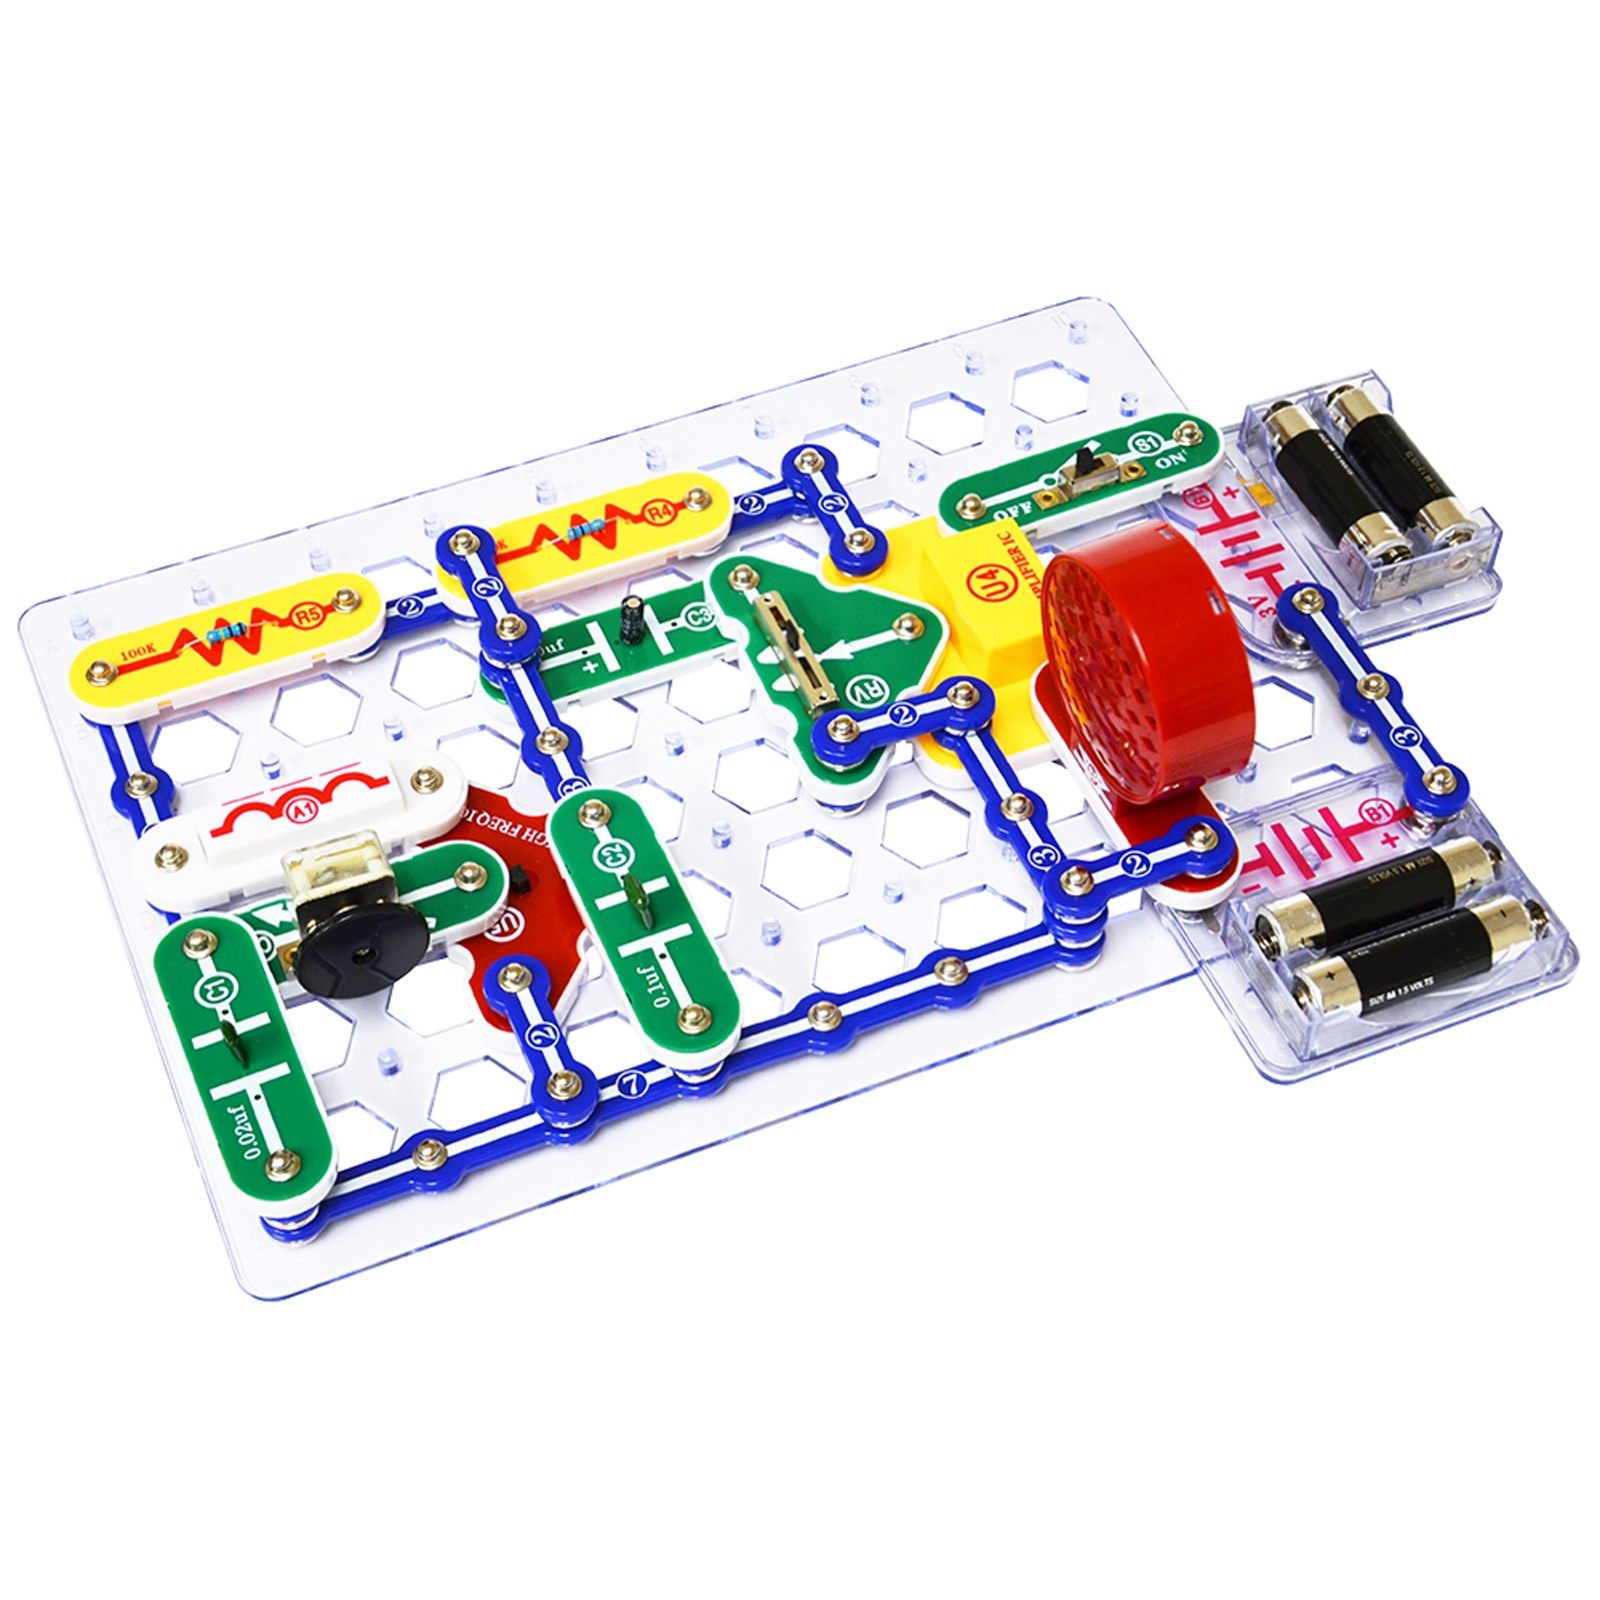 Product Findel International New Projects In Electronics Snap Circuits 300 Kit